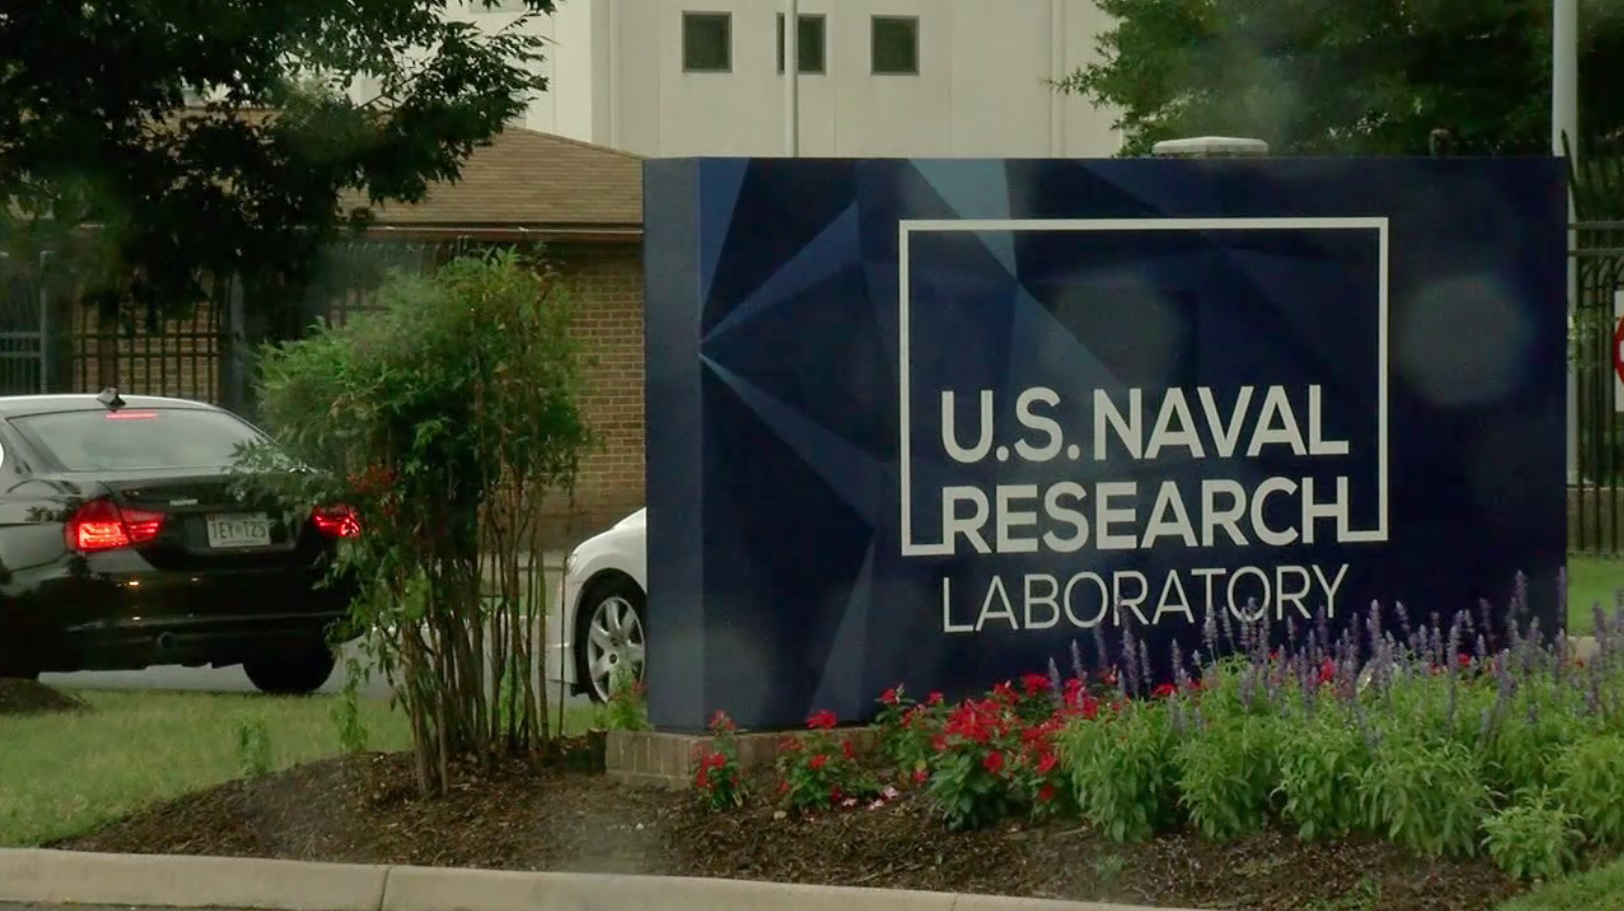 The new strategic vision for Naval research